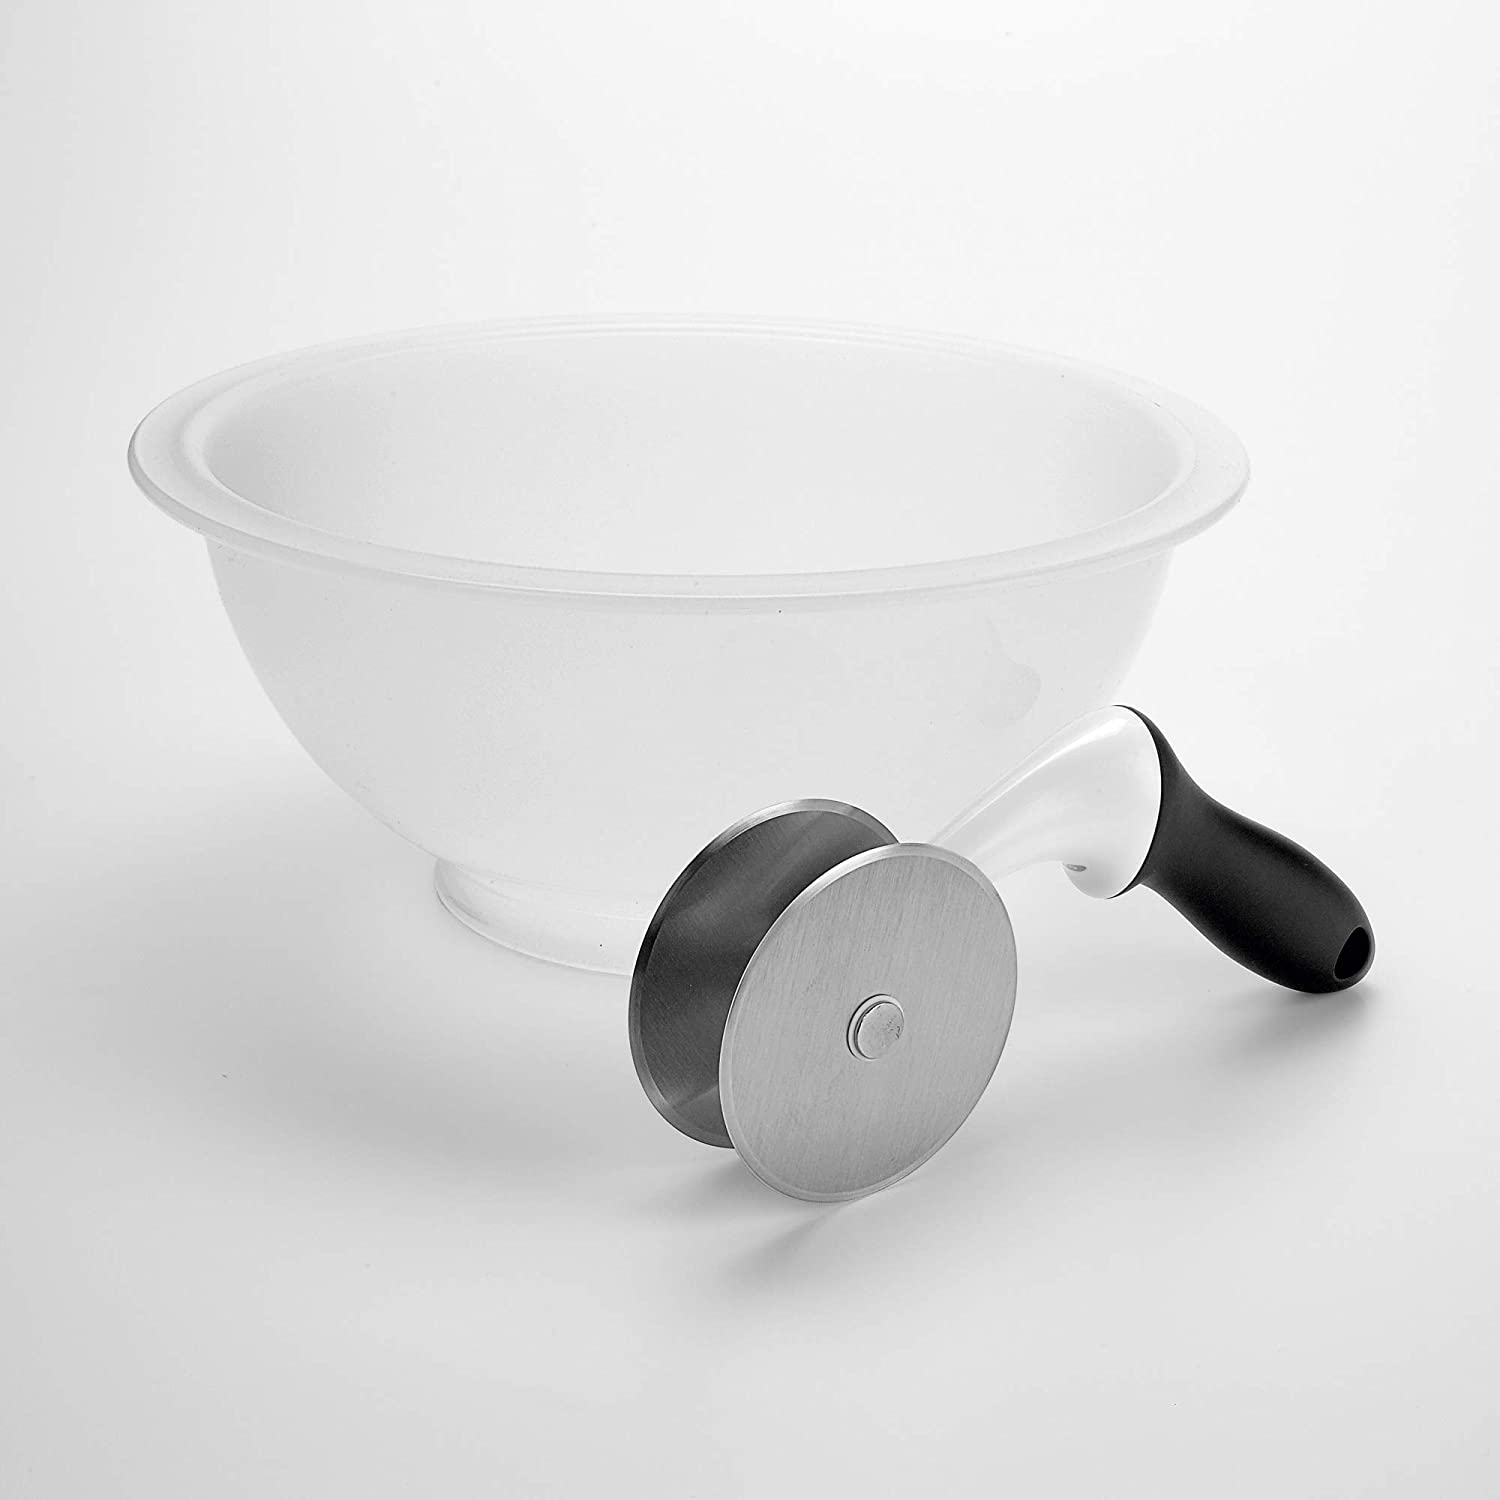 OXO Good Grips Salad Chopper & Bowl, 12.5 x 5.5 x 12.5 inches, White: Kitchen & Dining